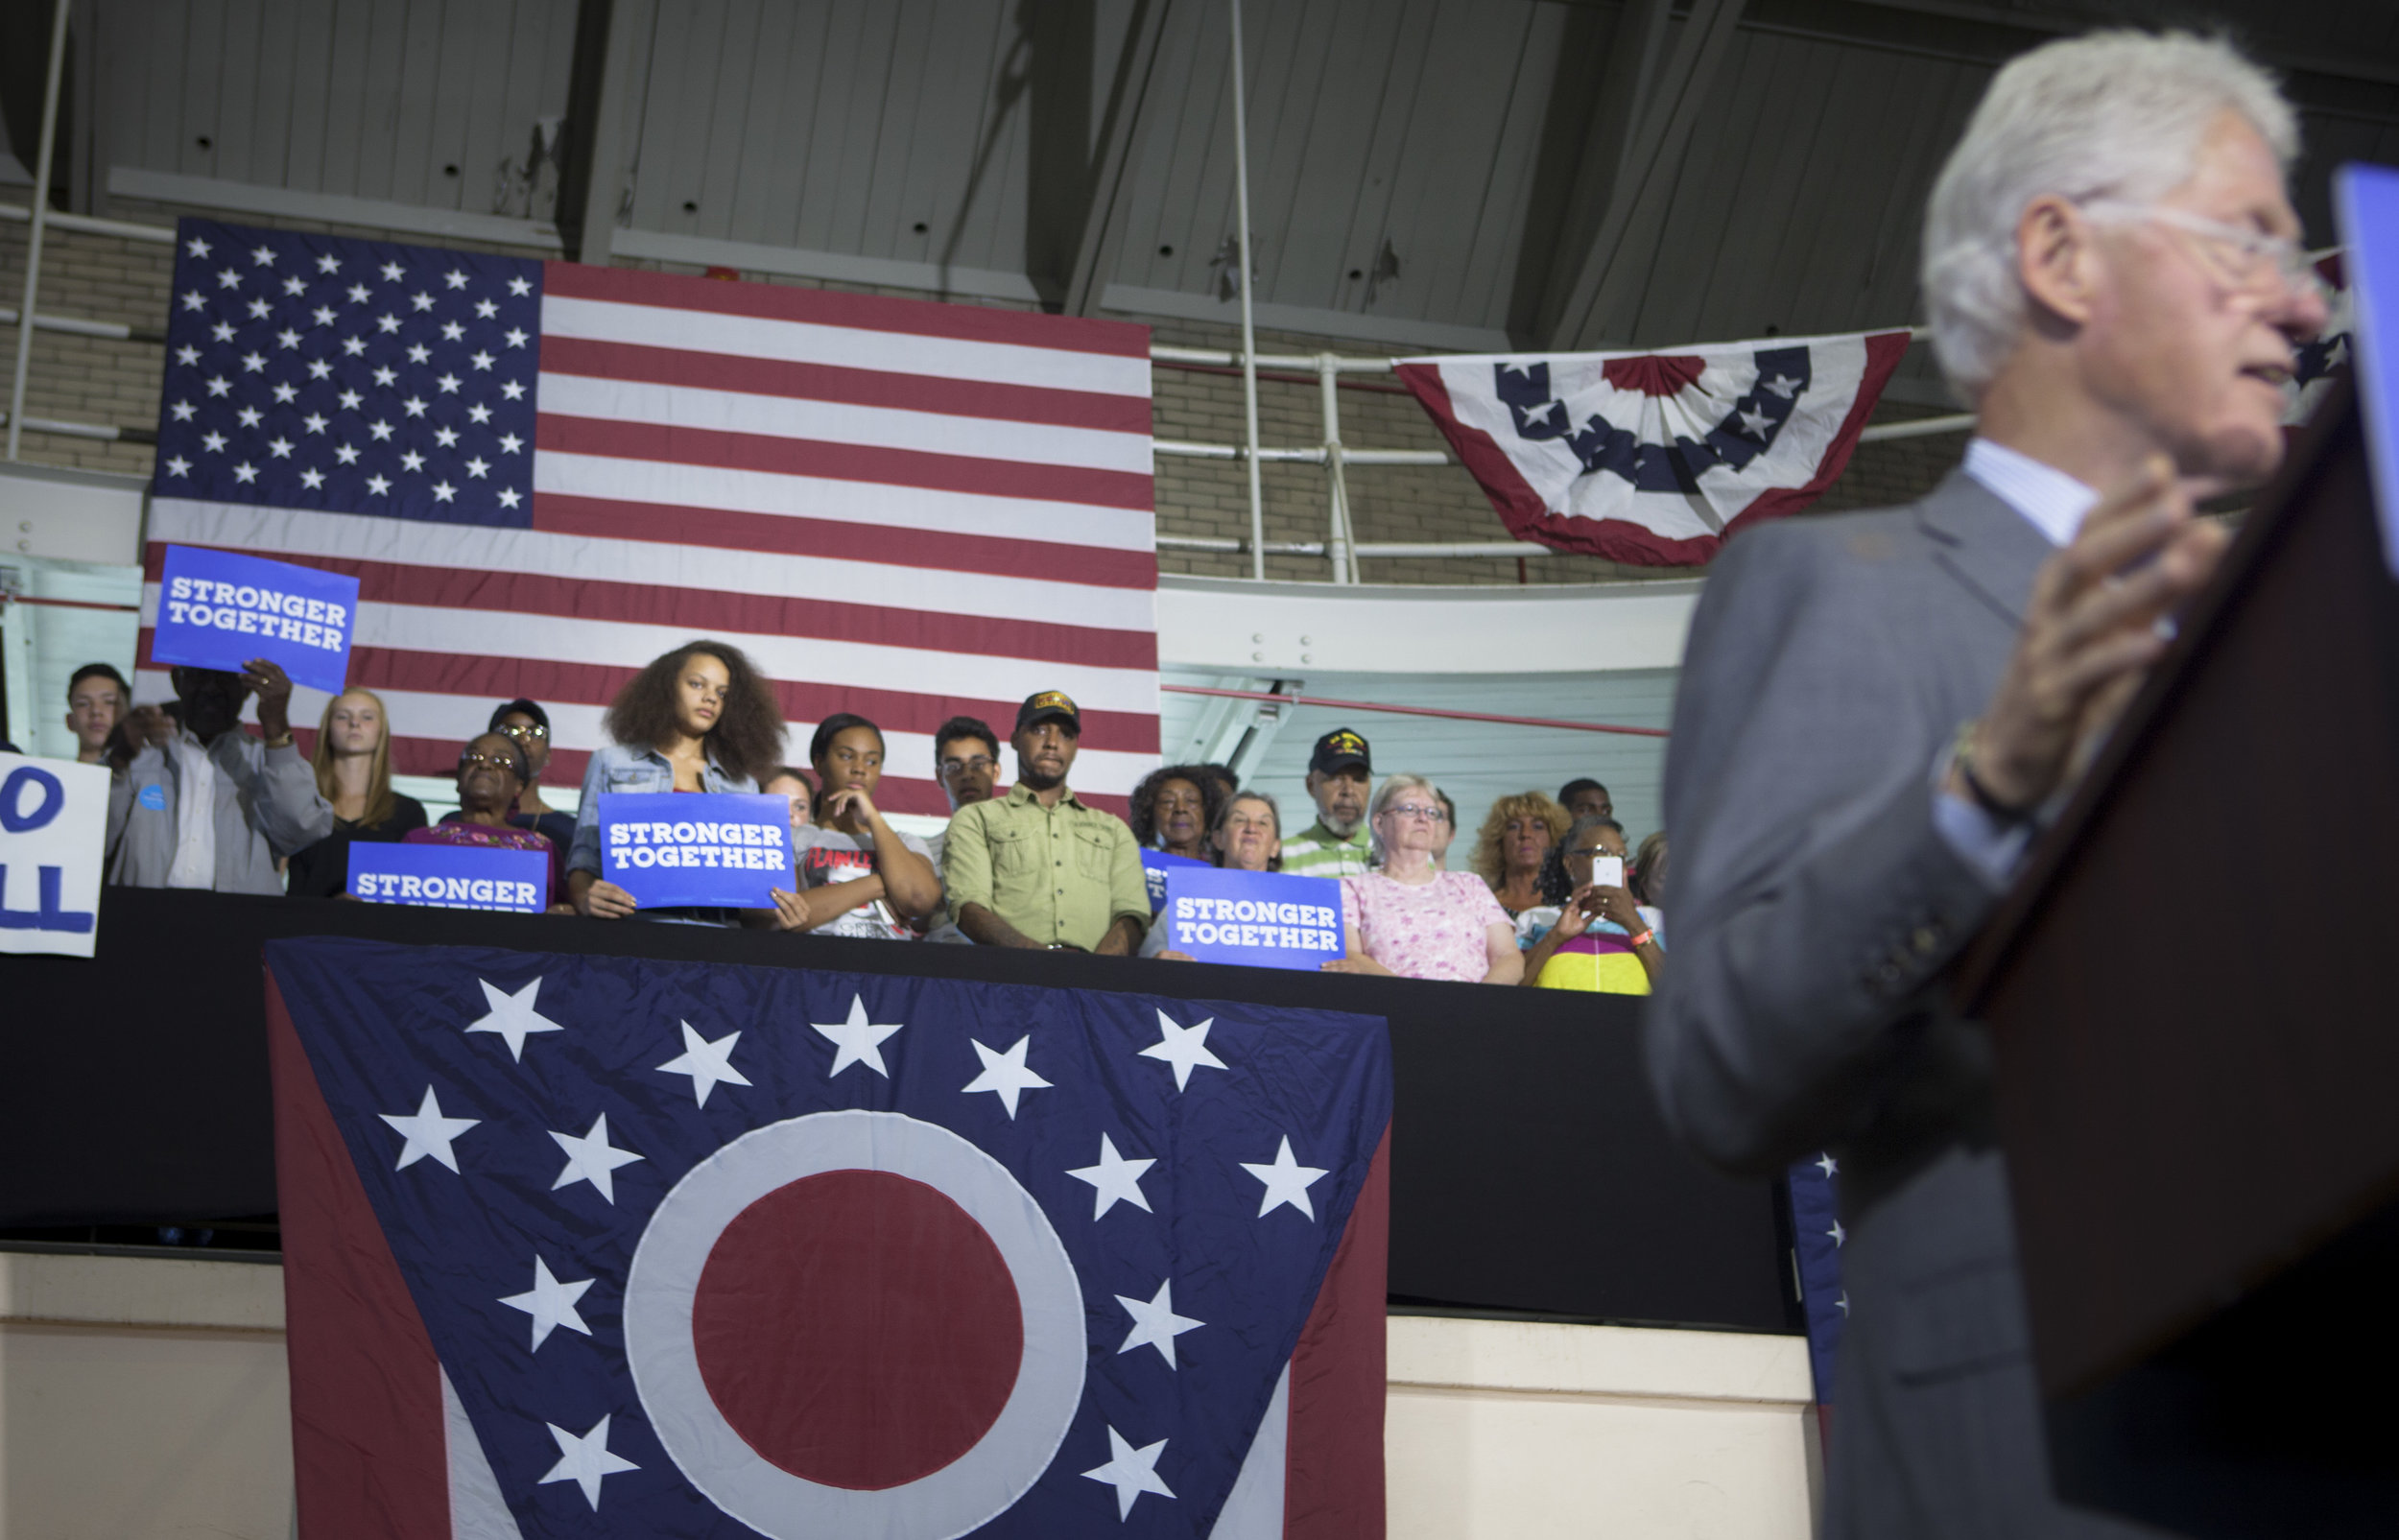 09272016_BJM_Bill_Clinton_in_Toledo_Ohio_09.jpg